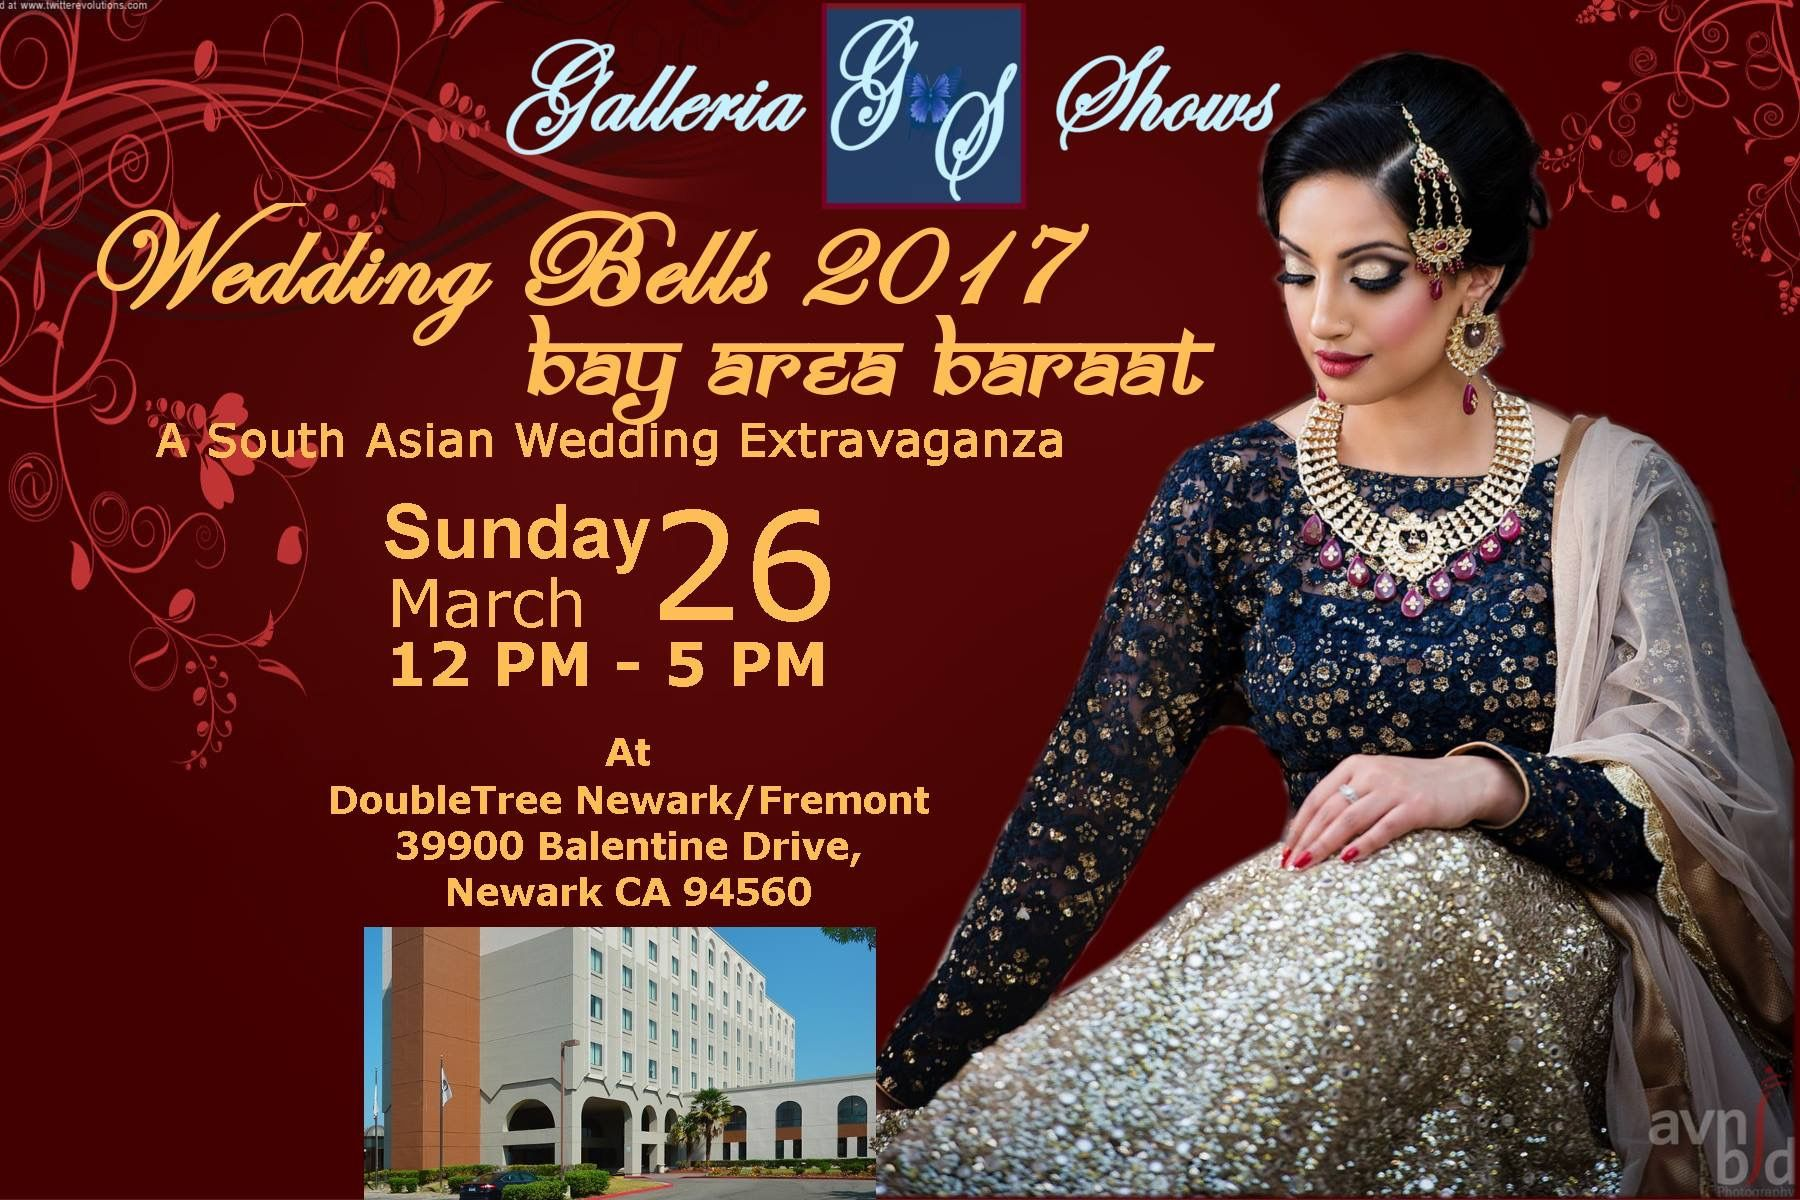 Wedding Bells 2017